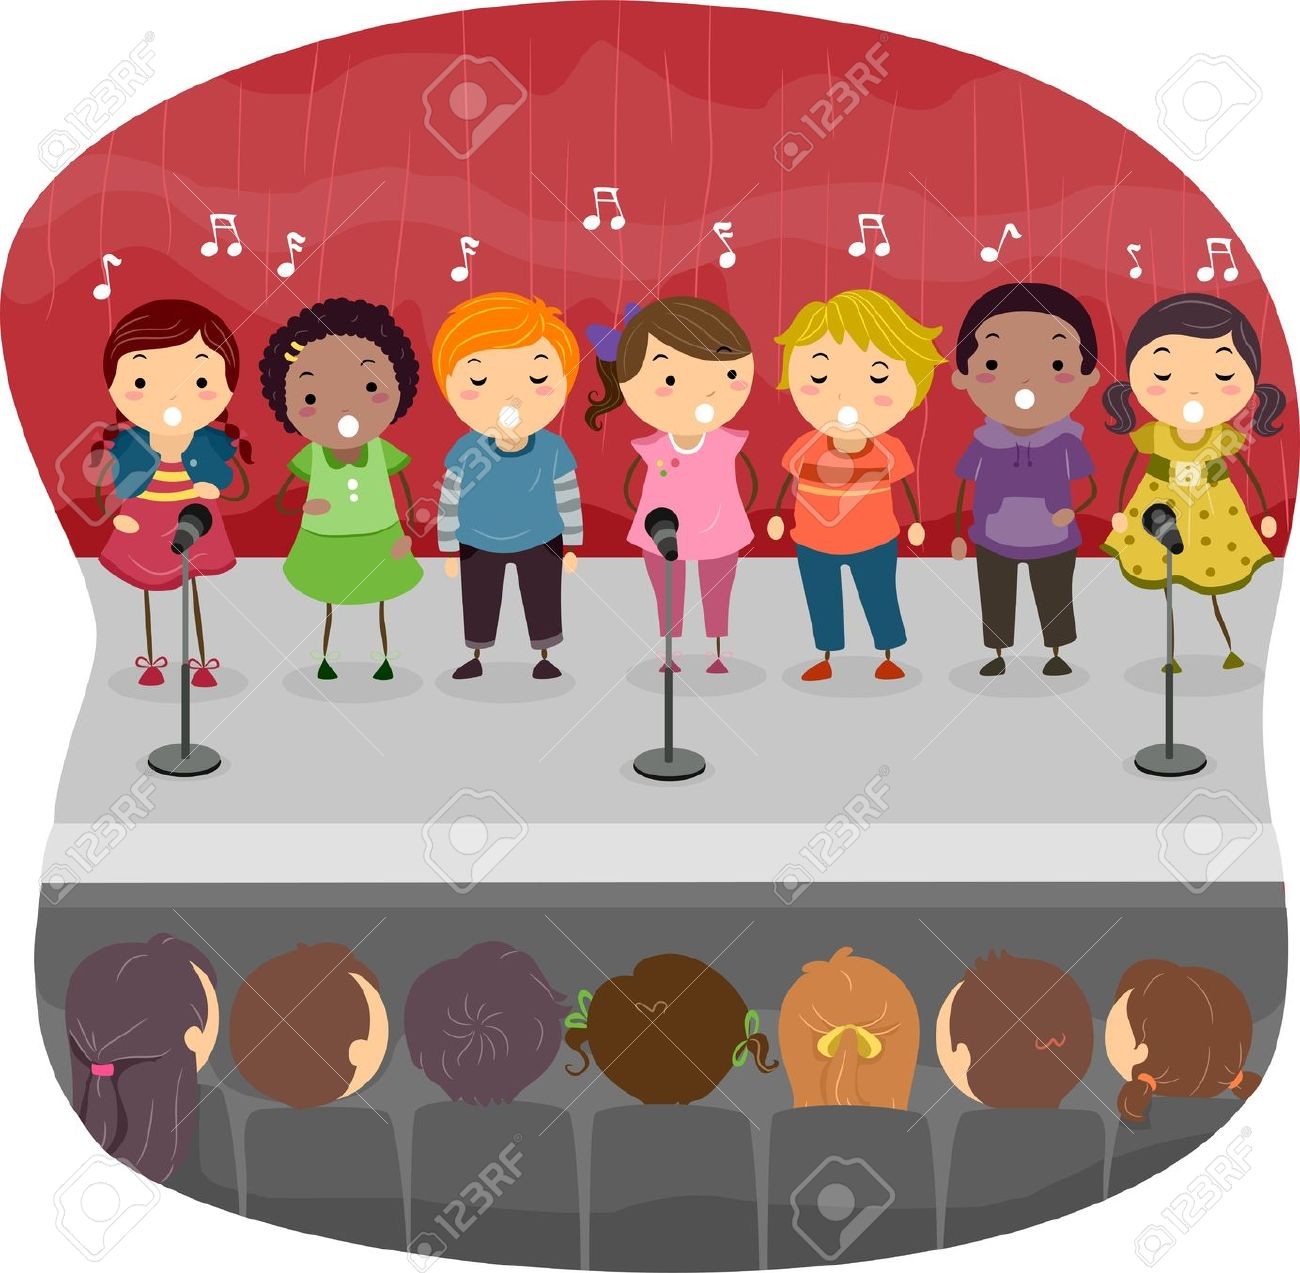 Kids on stage clipart.